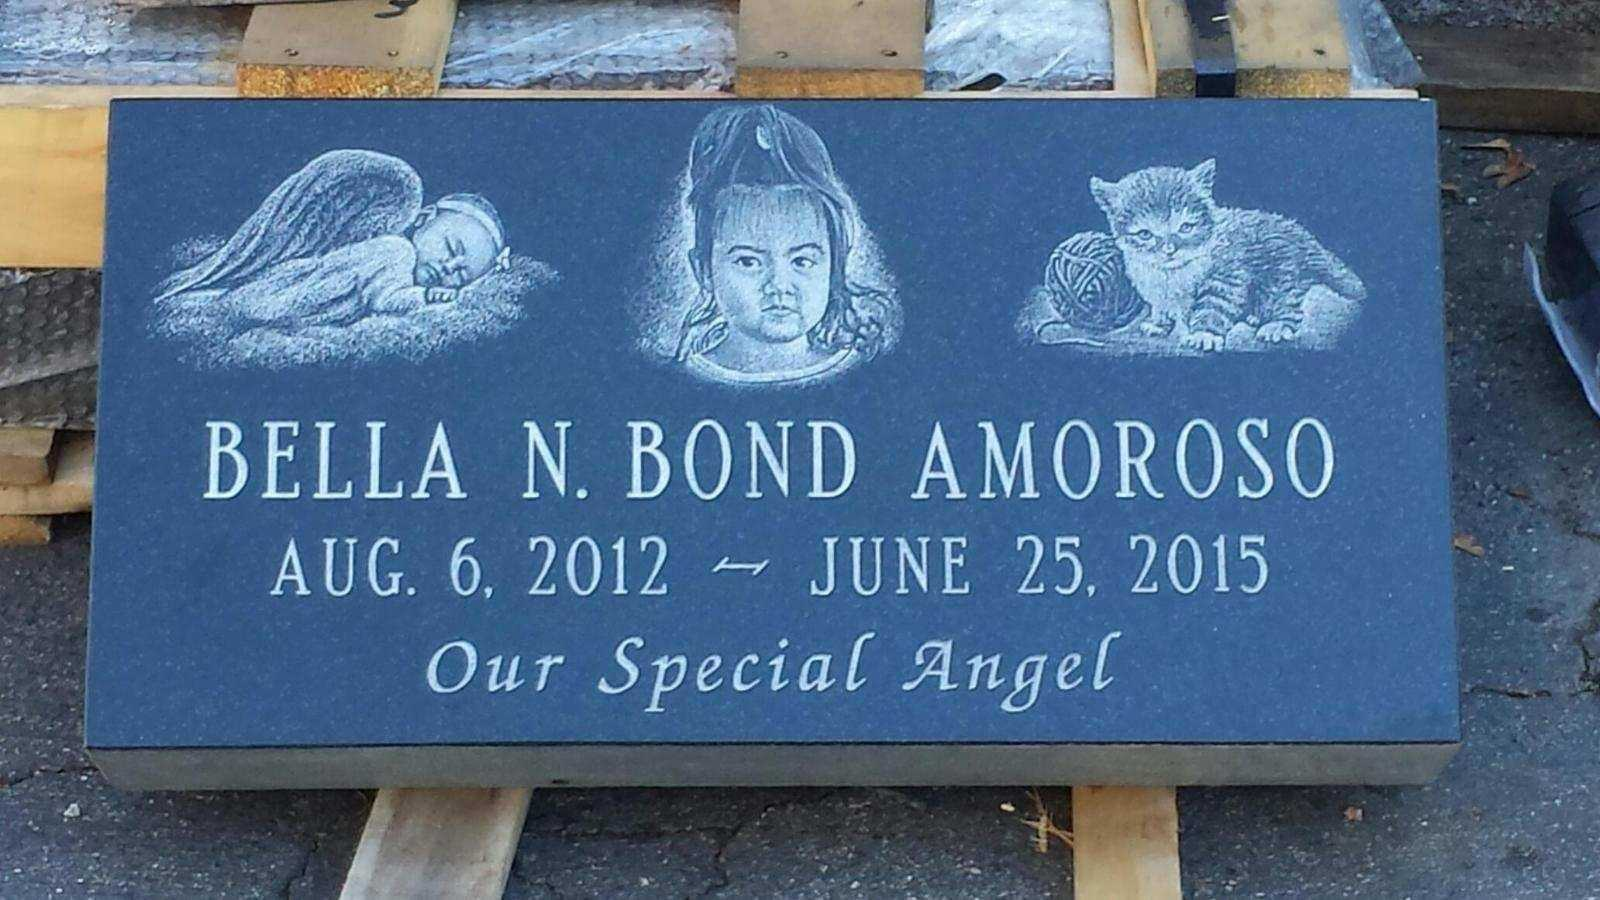 The headstone for the grave of Bella Bond